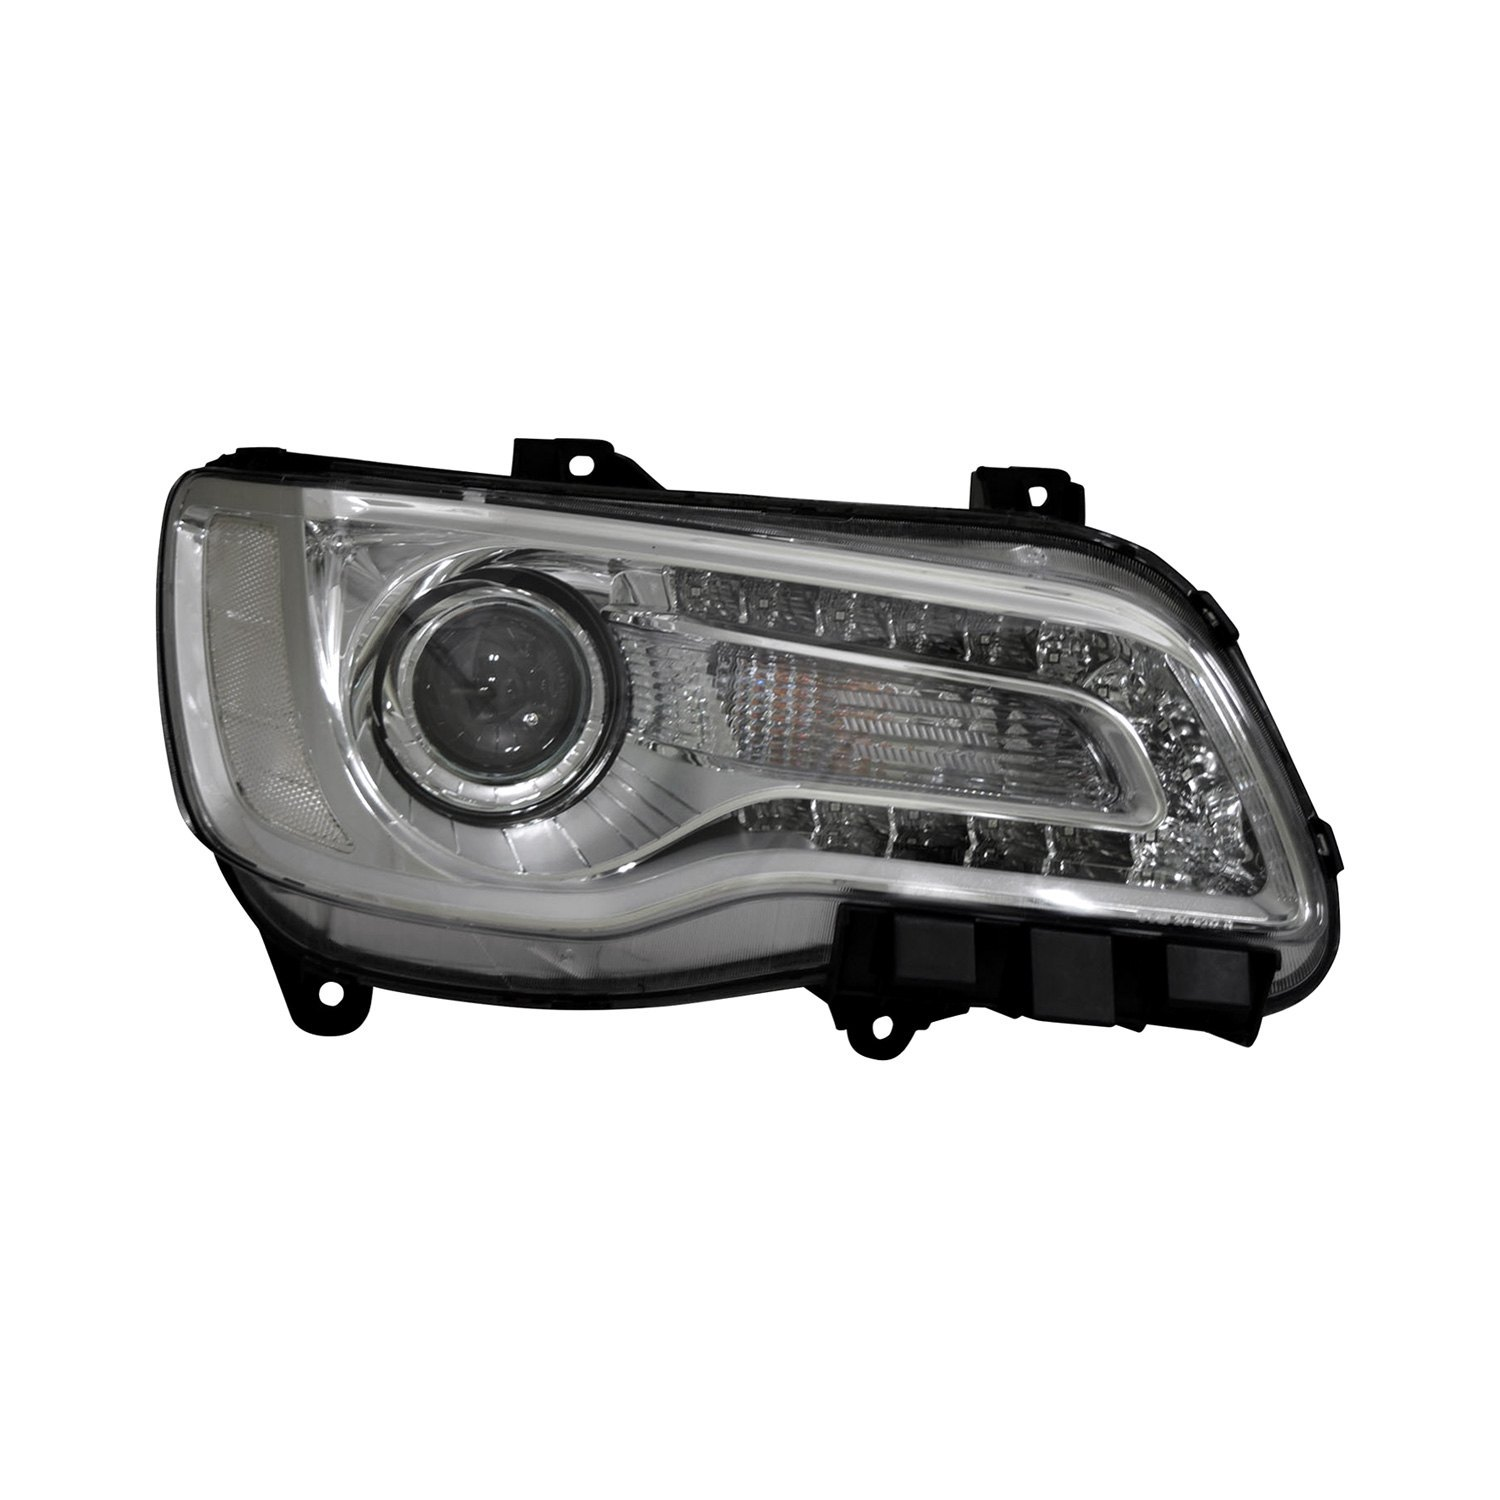 Chrysler 300c With Factory Halogen Headlights: Chrysler 300 2015-2016 Replacement Headlight